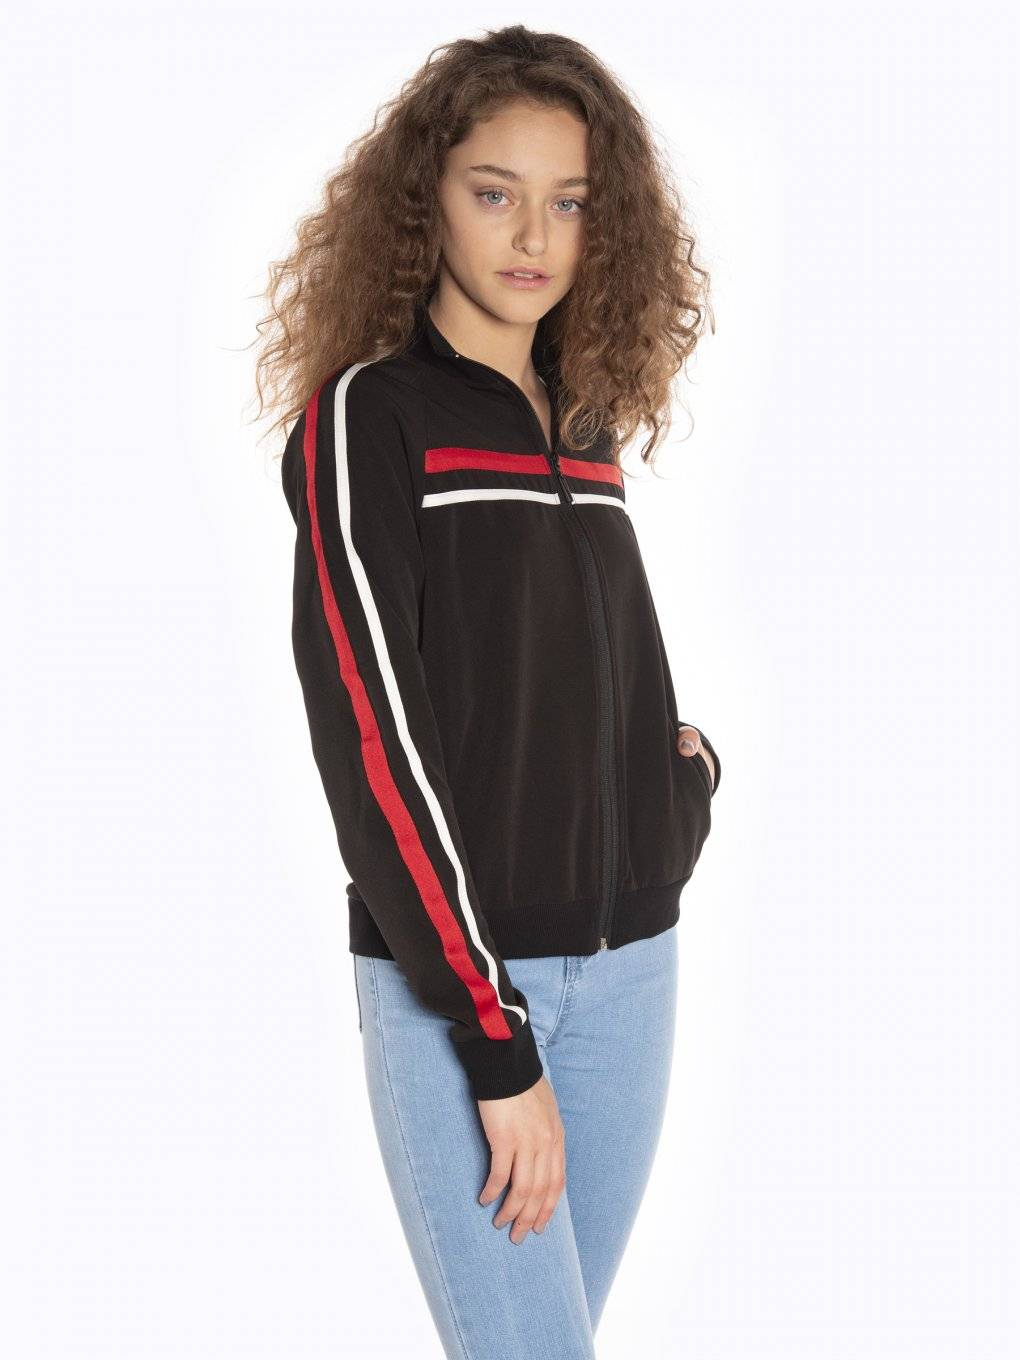 Vintage zip-up sweatshirt